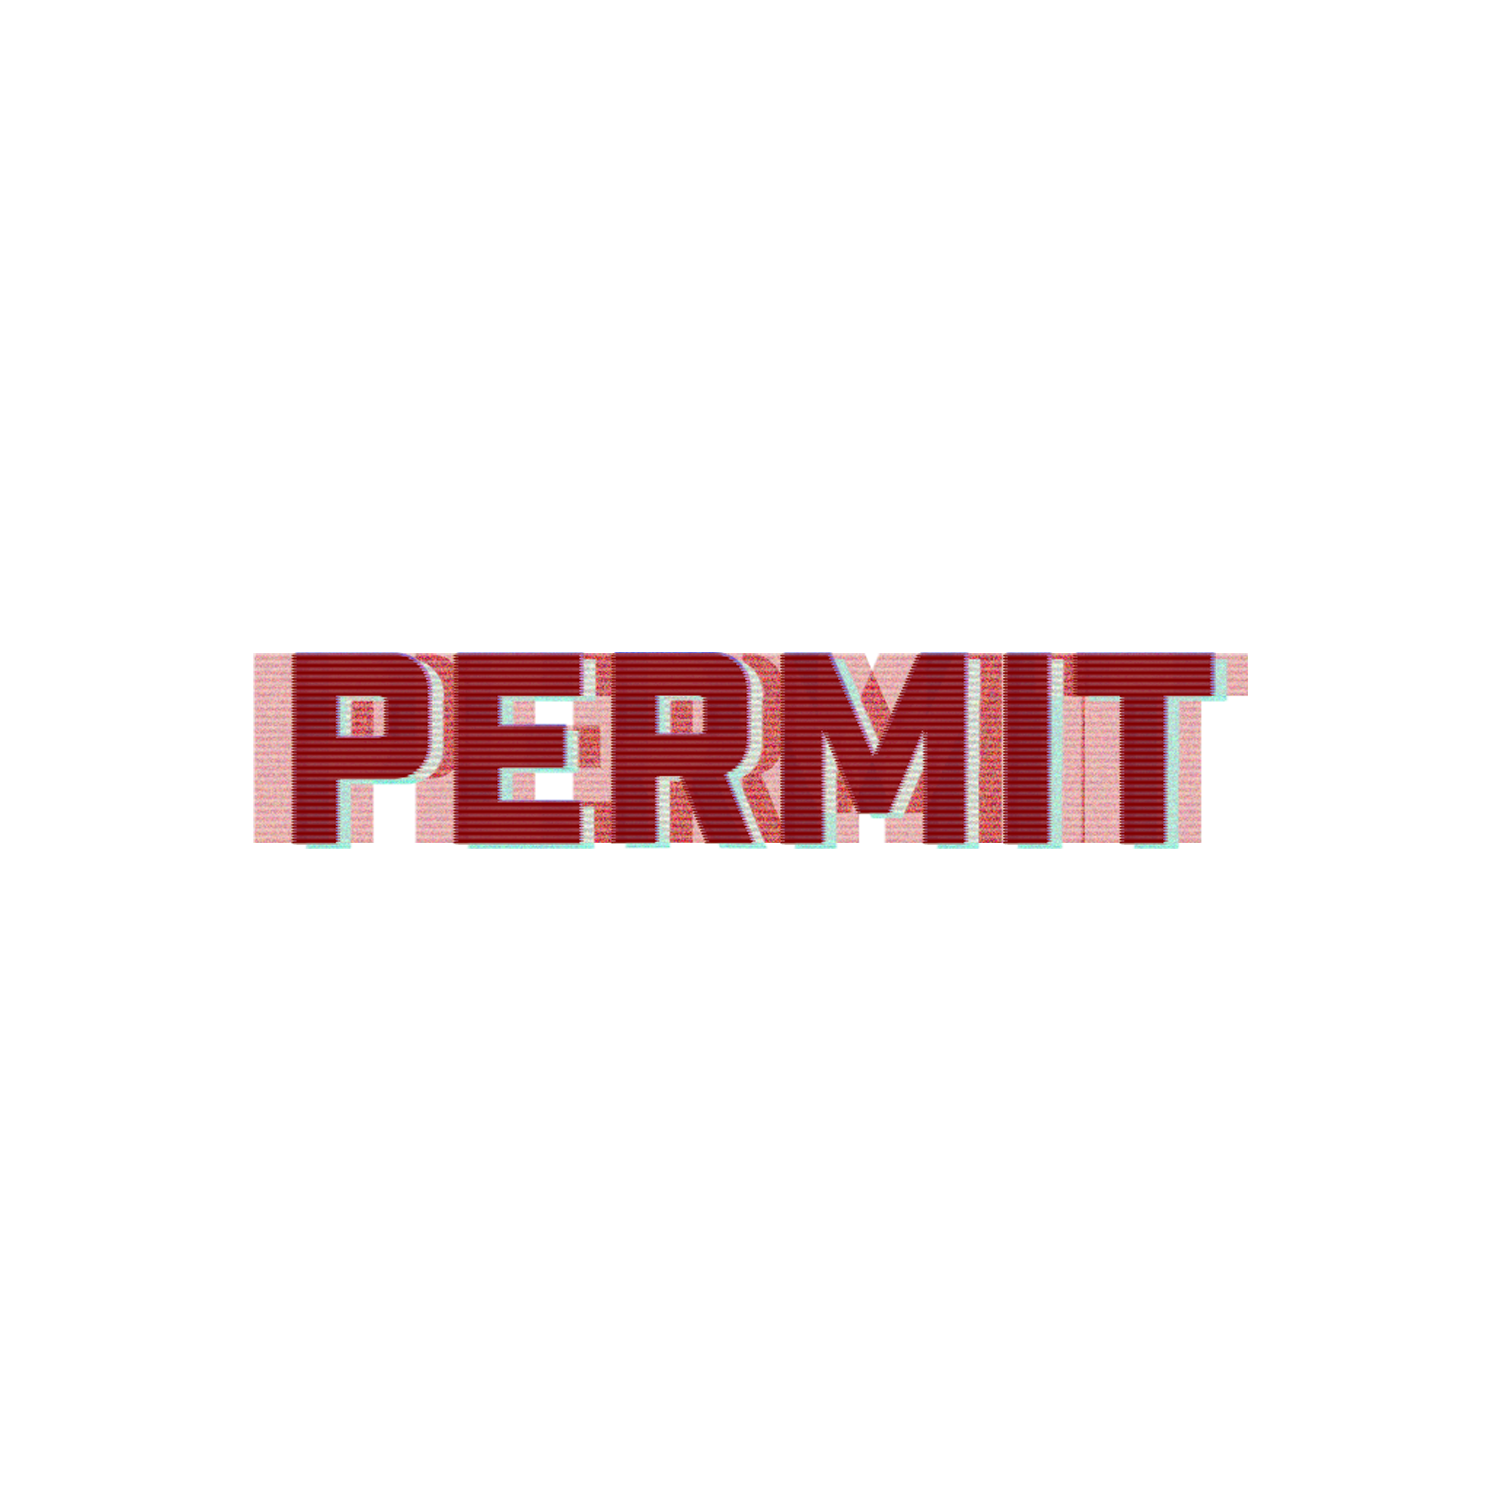 permit_1_1_1_1.png